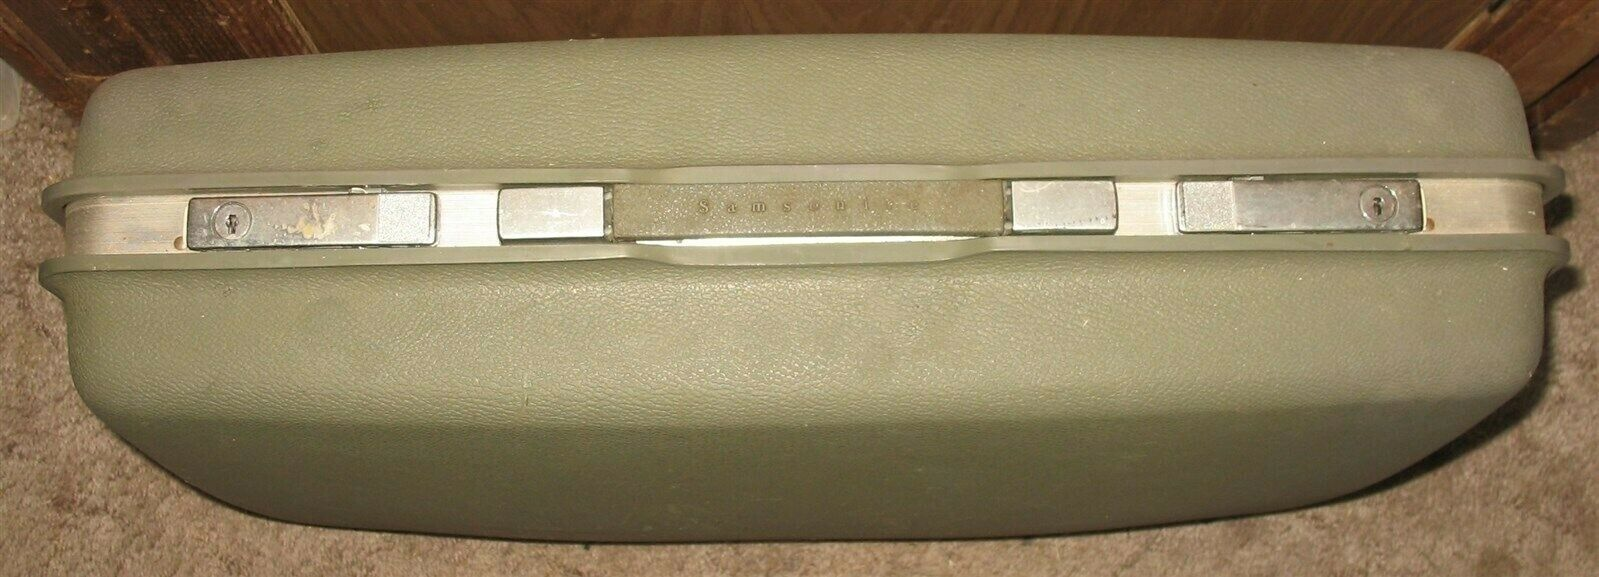 "Vtg Samsonite Saturn 24"" x 18"" x 6 1/2"" Gray/Green Suitcase Hard Travel Luggage"